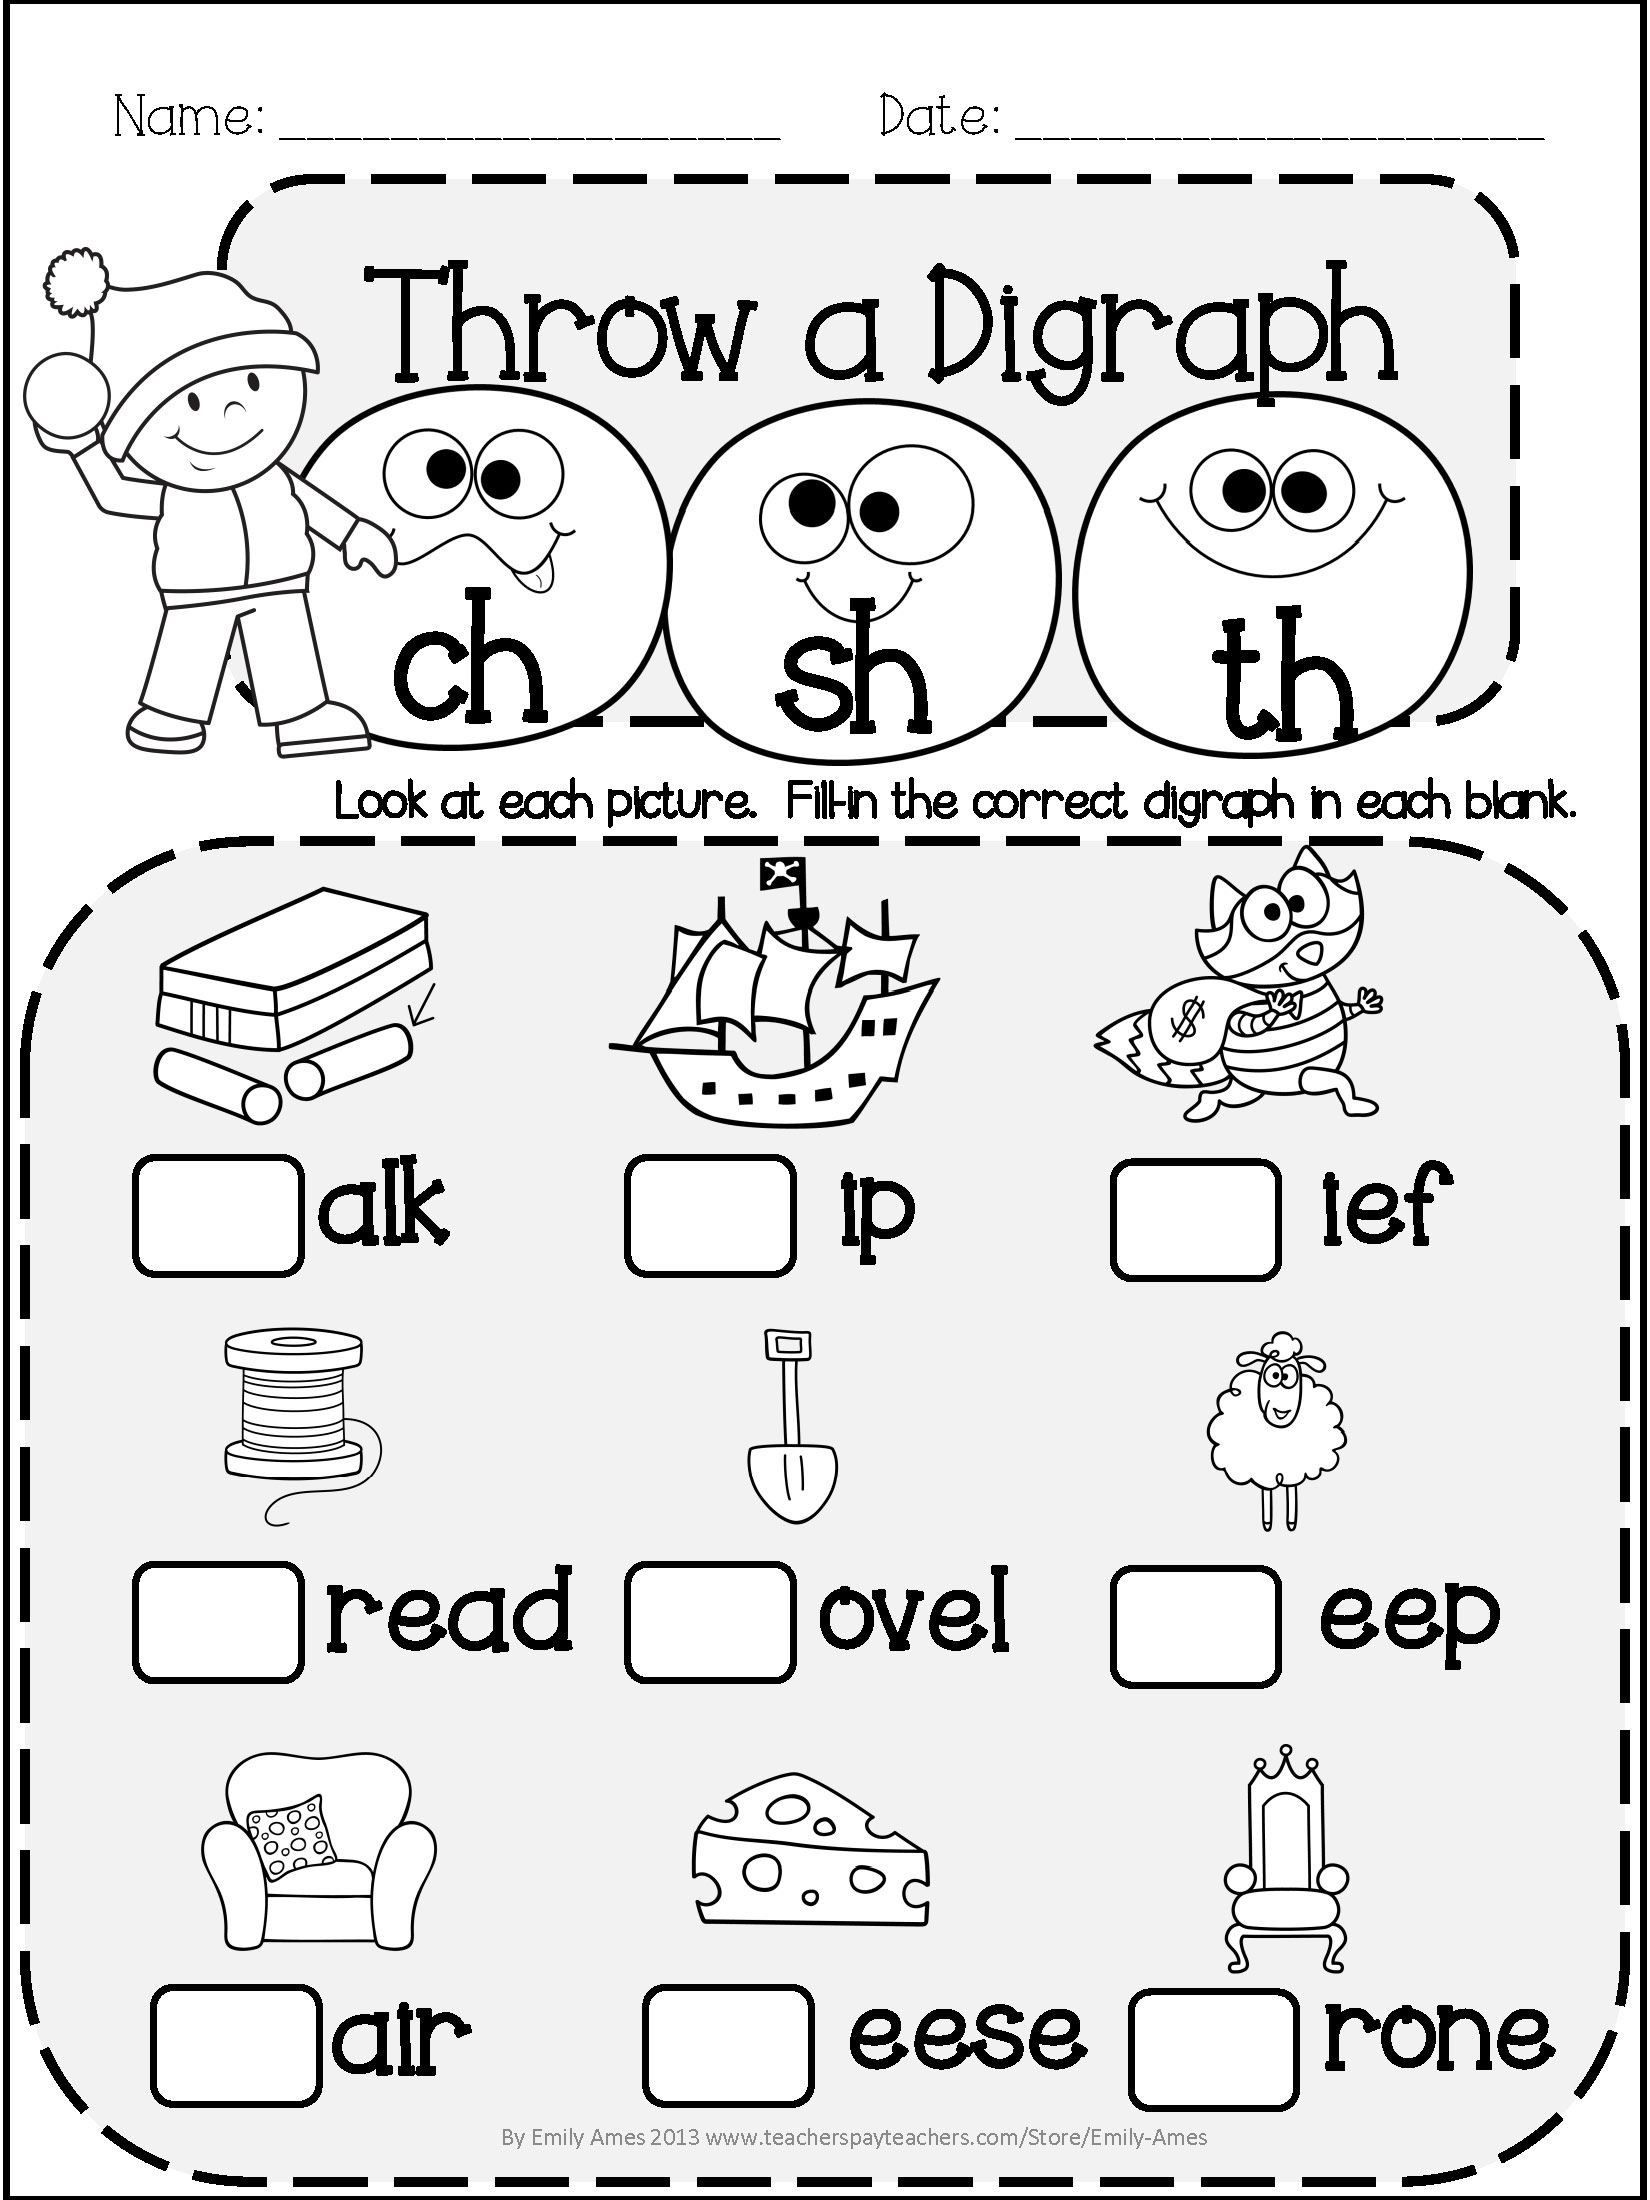 hight resolution of Ou Ow Worksheets 3rd Grade Maggie Clement Maggiecle Ou Ow Phonics Worksheets    Blends worksheets